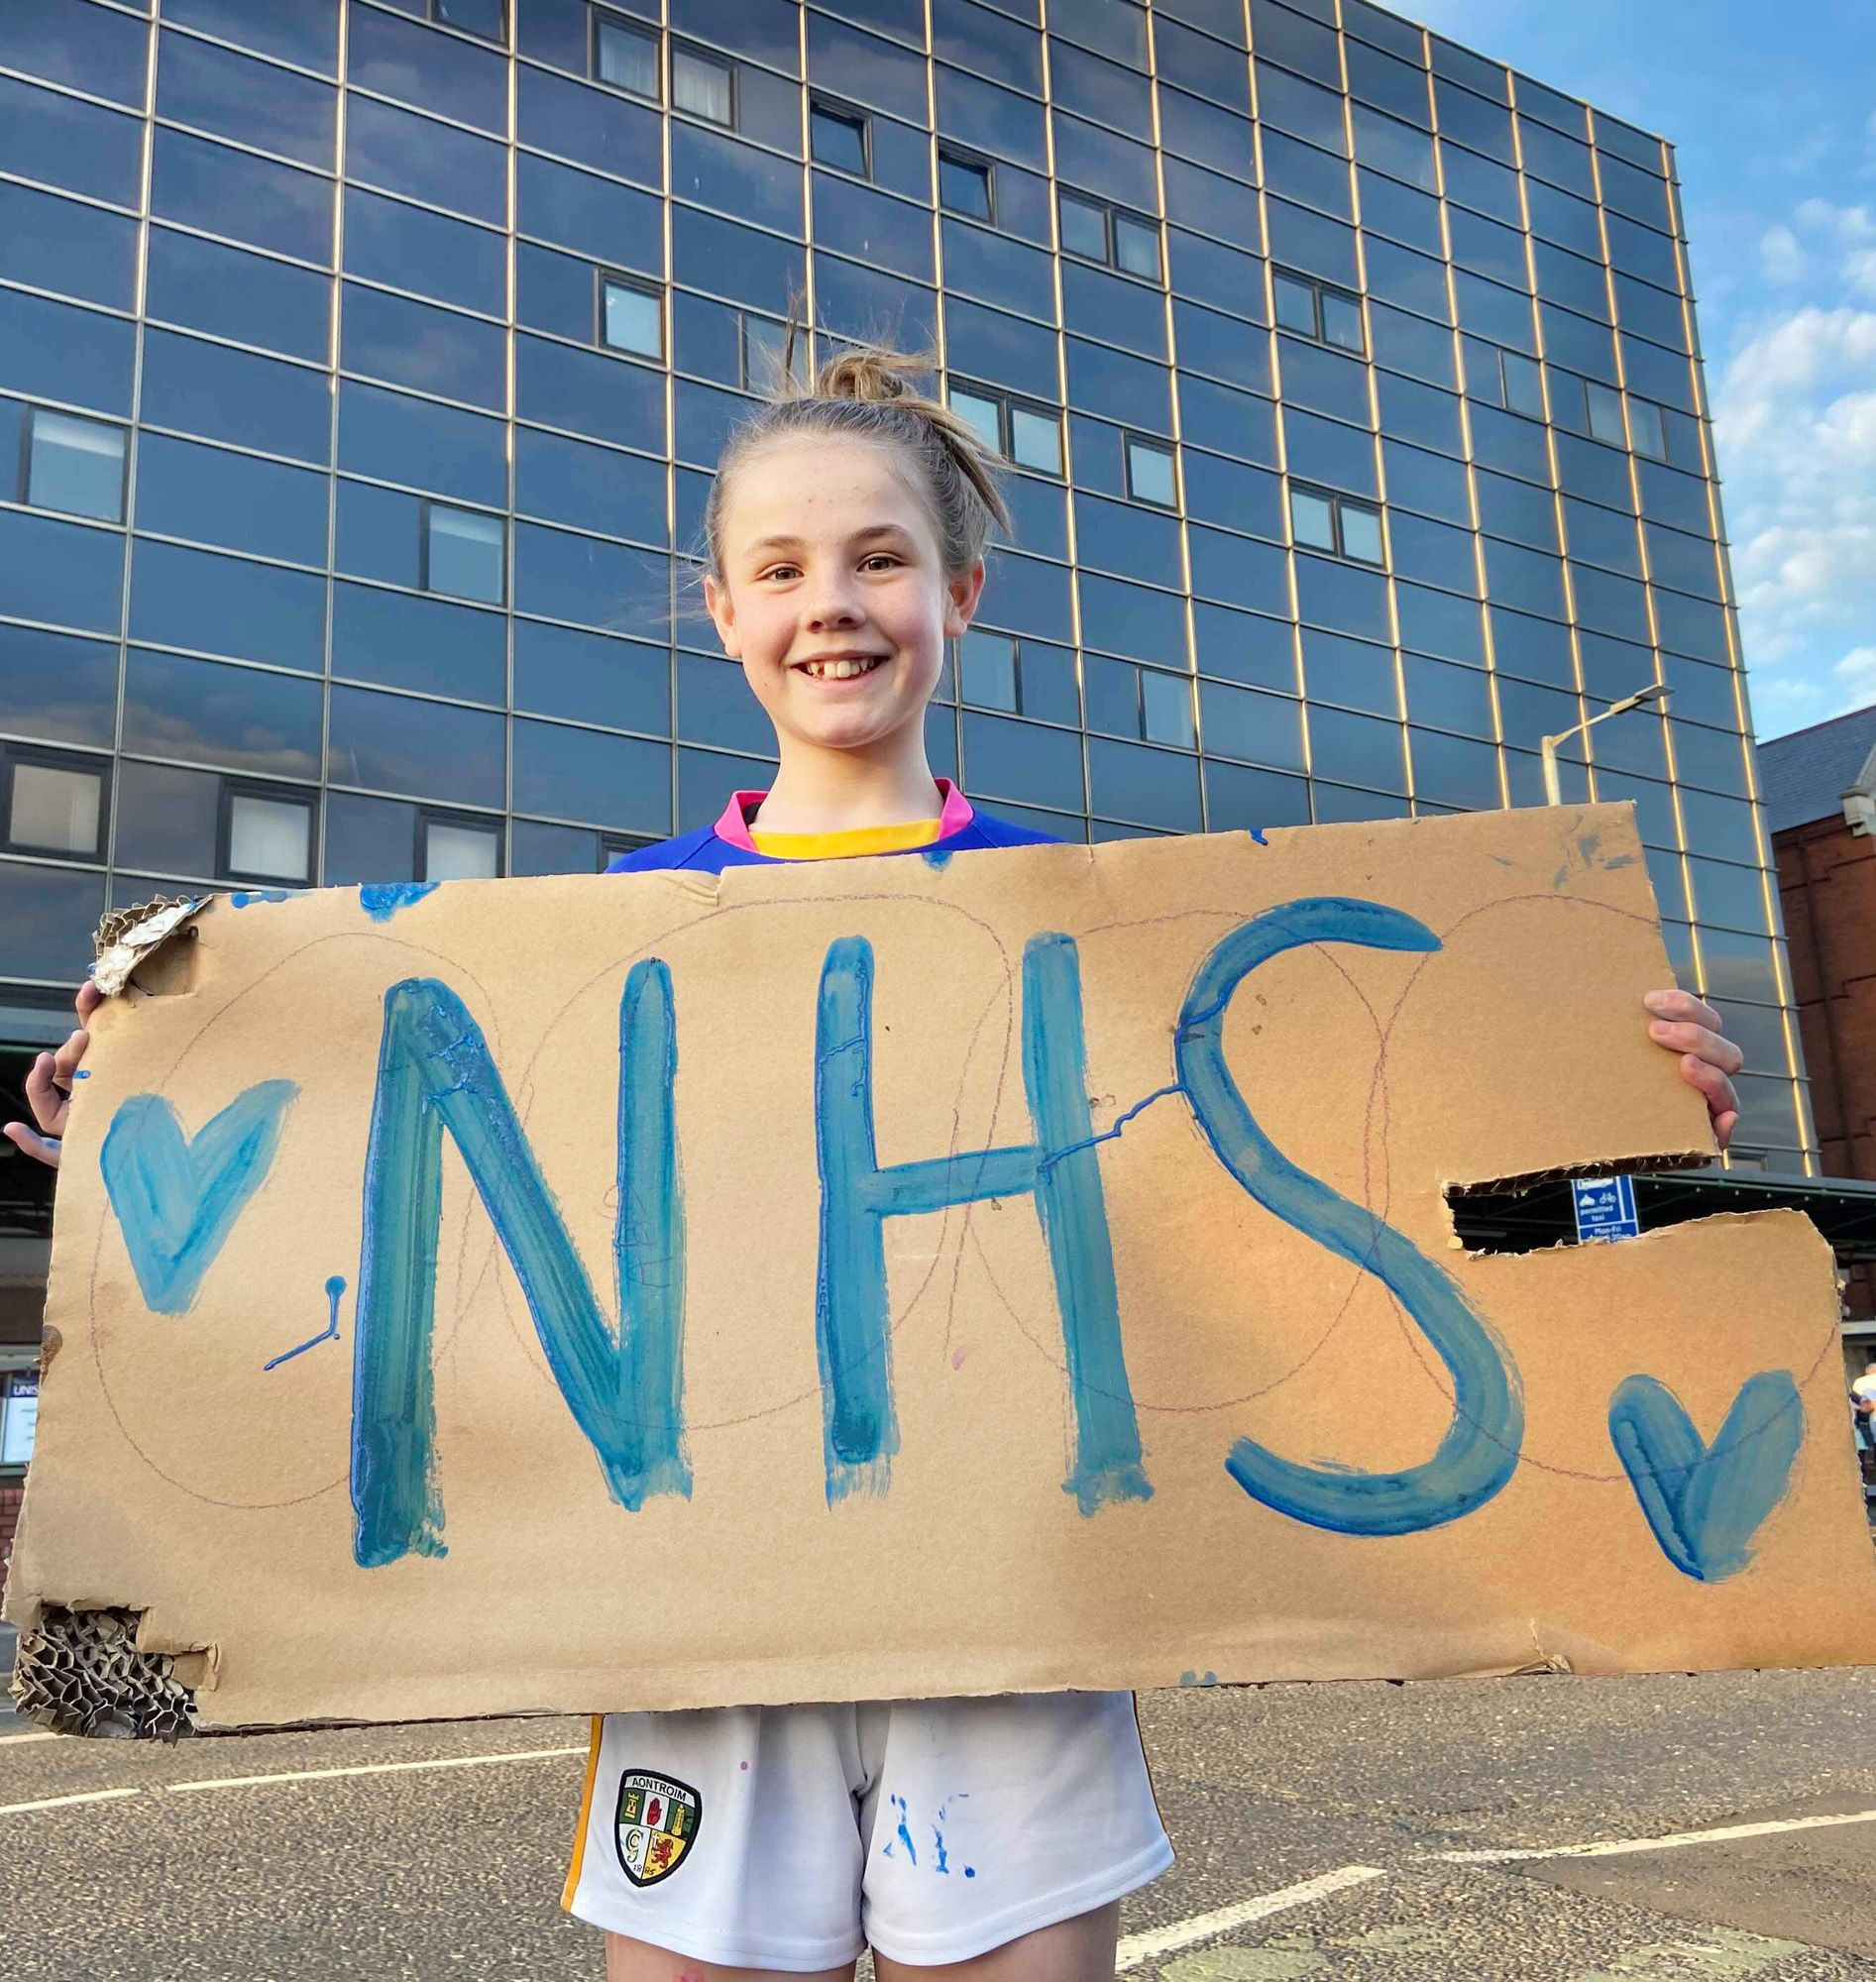 SOLIDARITY: Nine hospitals are over-capacity as Covid numbers surge again. Pictured in May of last year demonstrating support for HSC staff outside Mater Hospital is Jessica Massingham.